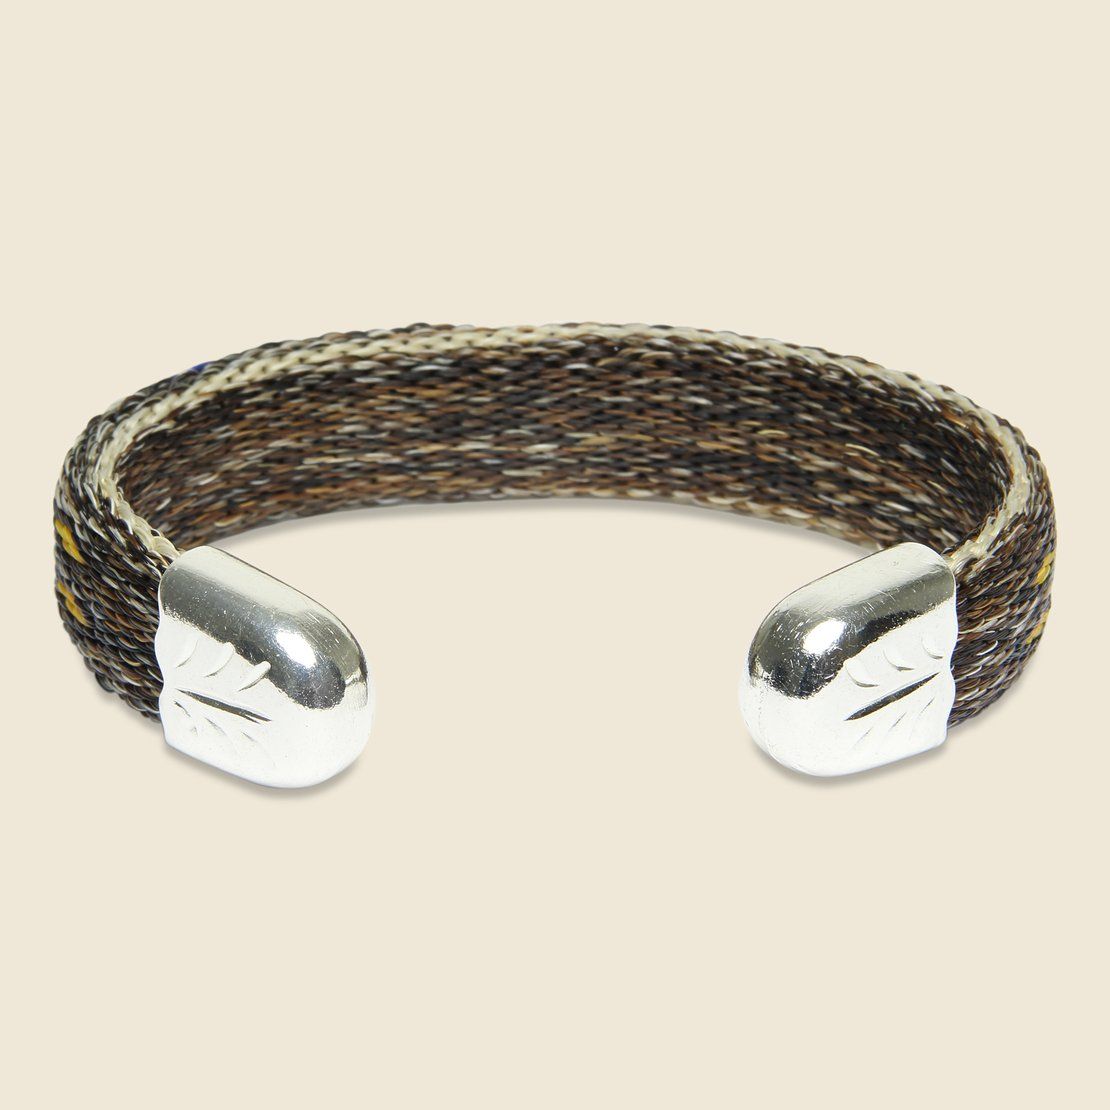 Bendable Horsehair Bracelet - Brown/Multi